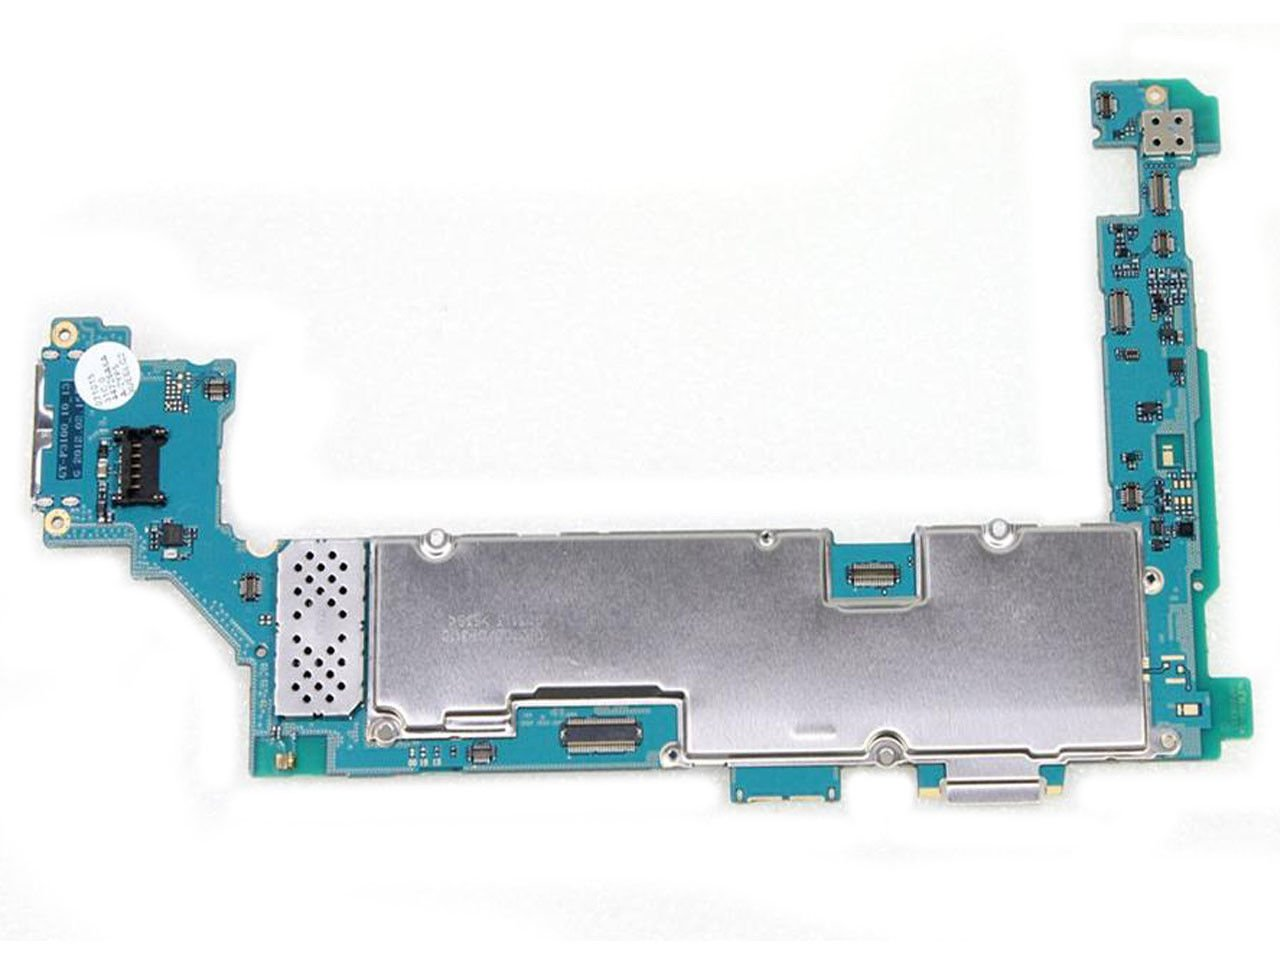 "Samsung Galaxy Tab 2 GT-P3100 GT-P3113 7"" Tablet Motherboard GH82-06478A"